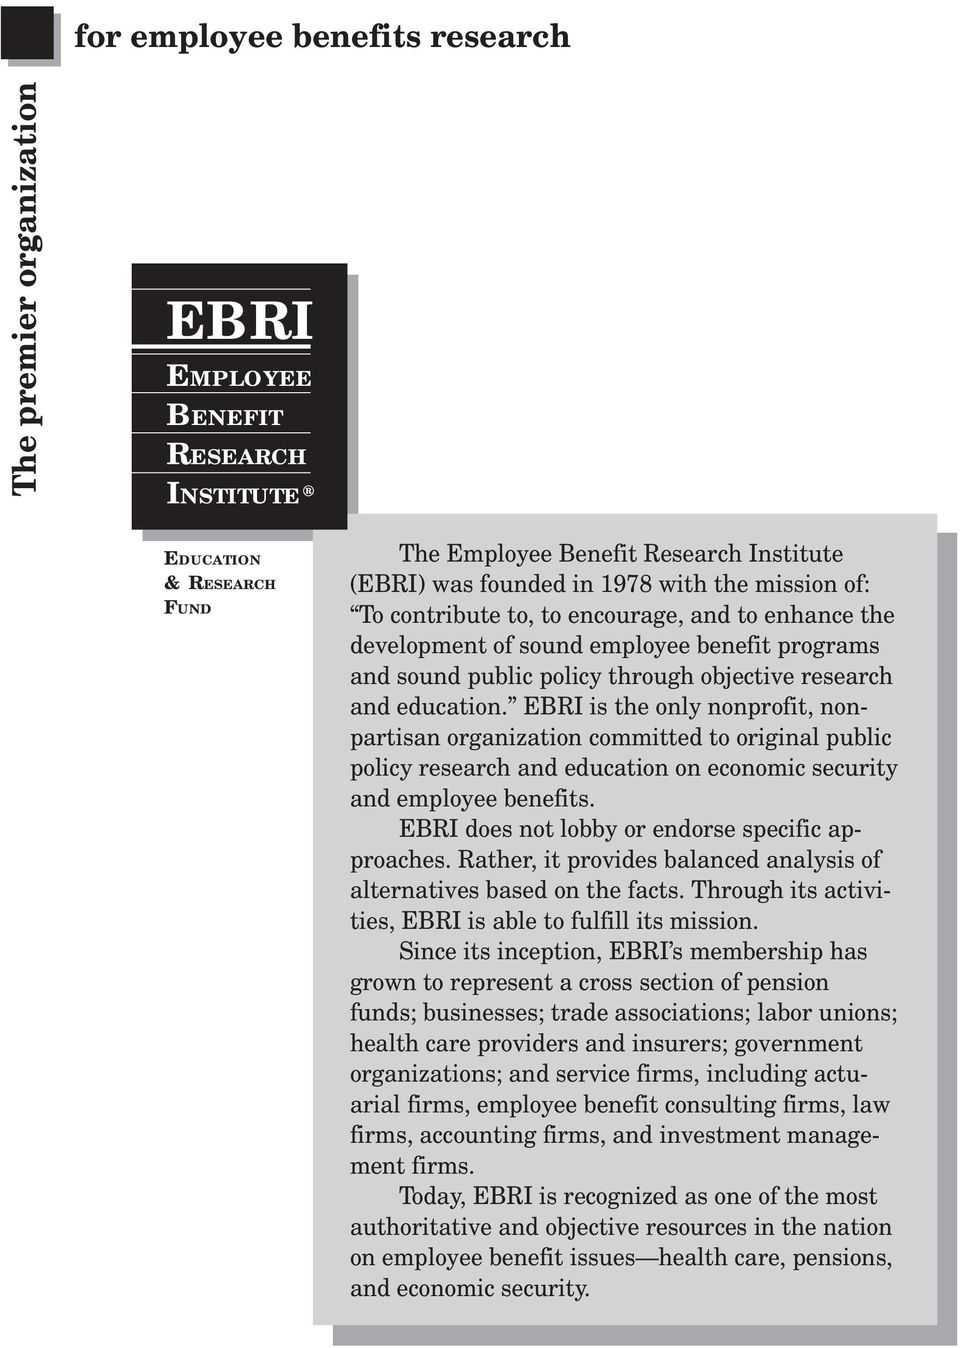 EBRI is the only nonprofit, nonpartisan organization committed to original public policy research and education on economic security and employee benefits.